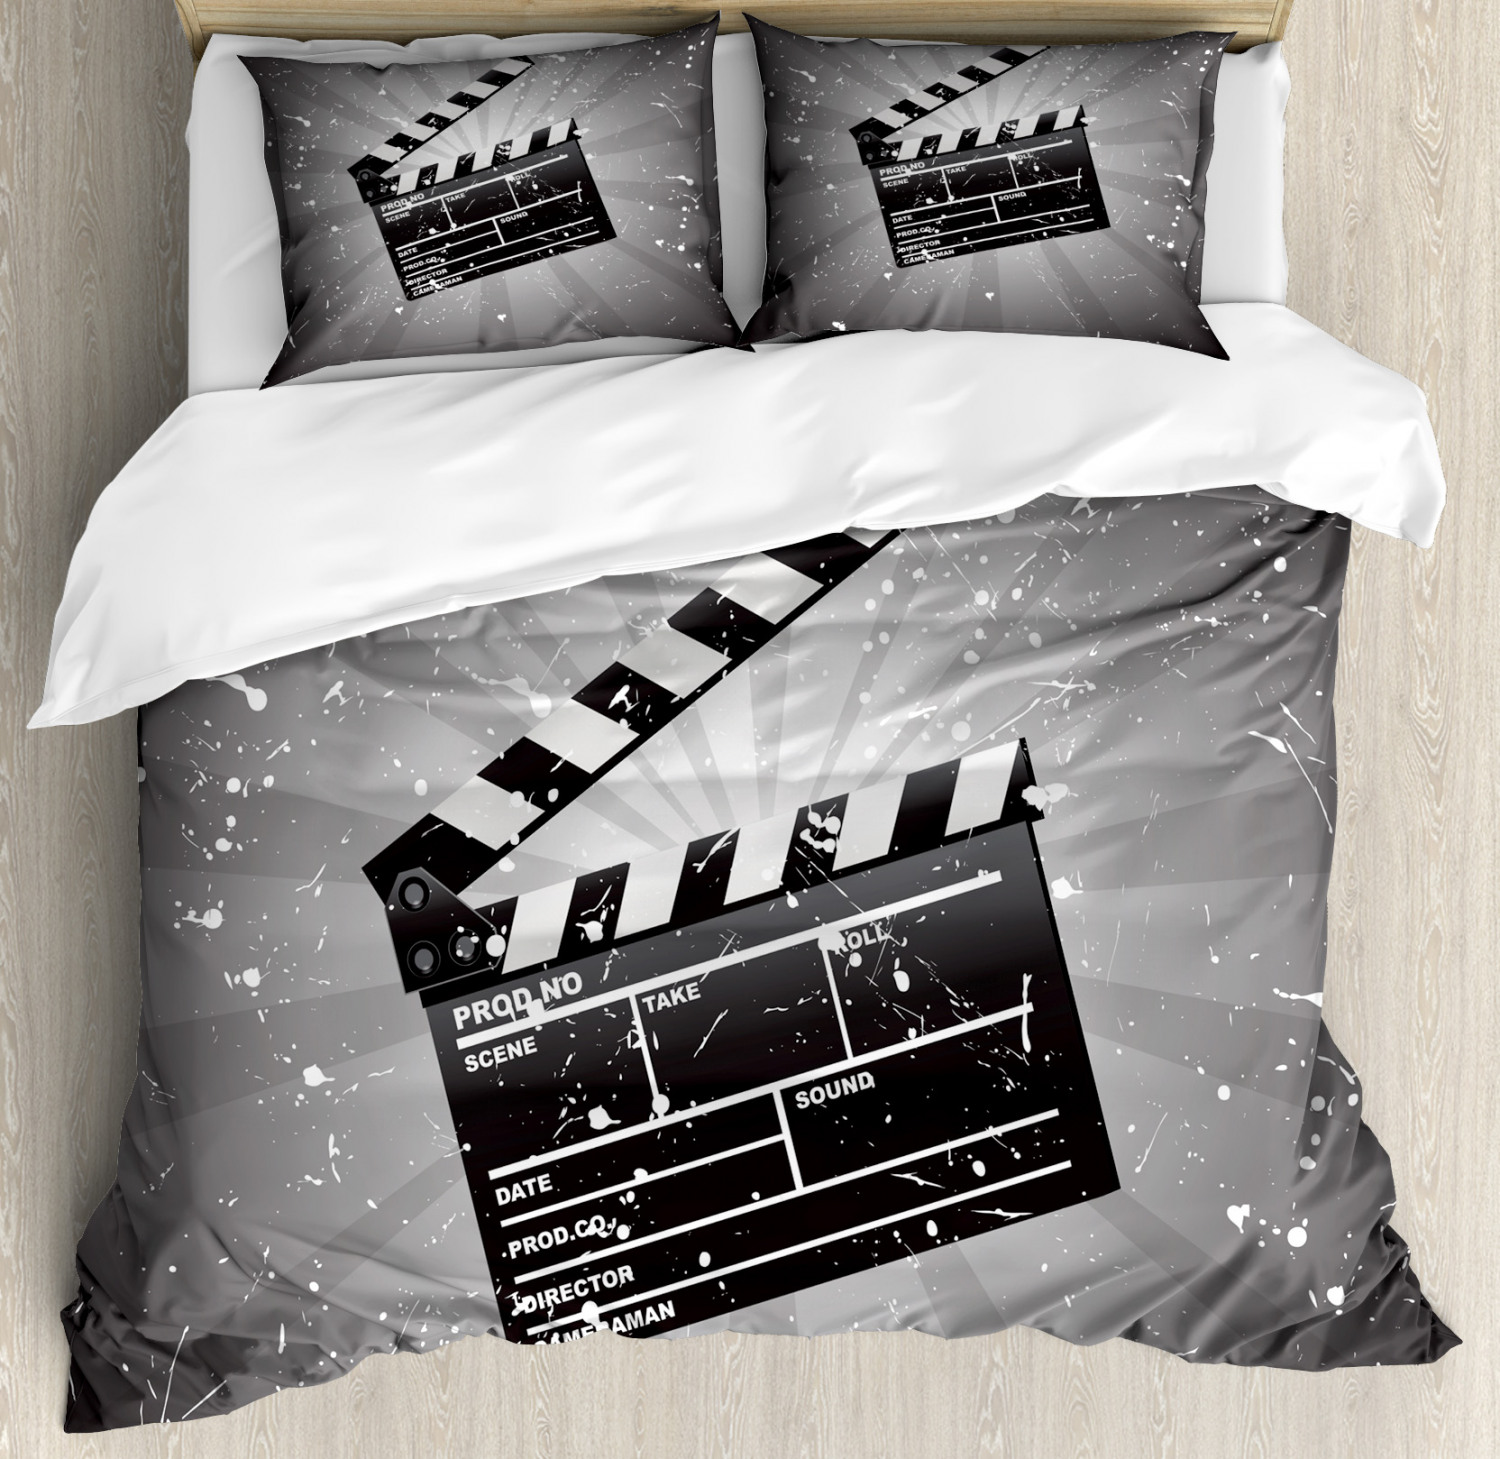 Movie-Theater-Duvet-Cover-Set-with-Pillow-Shams-Clapper-Board-Print